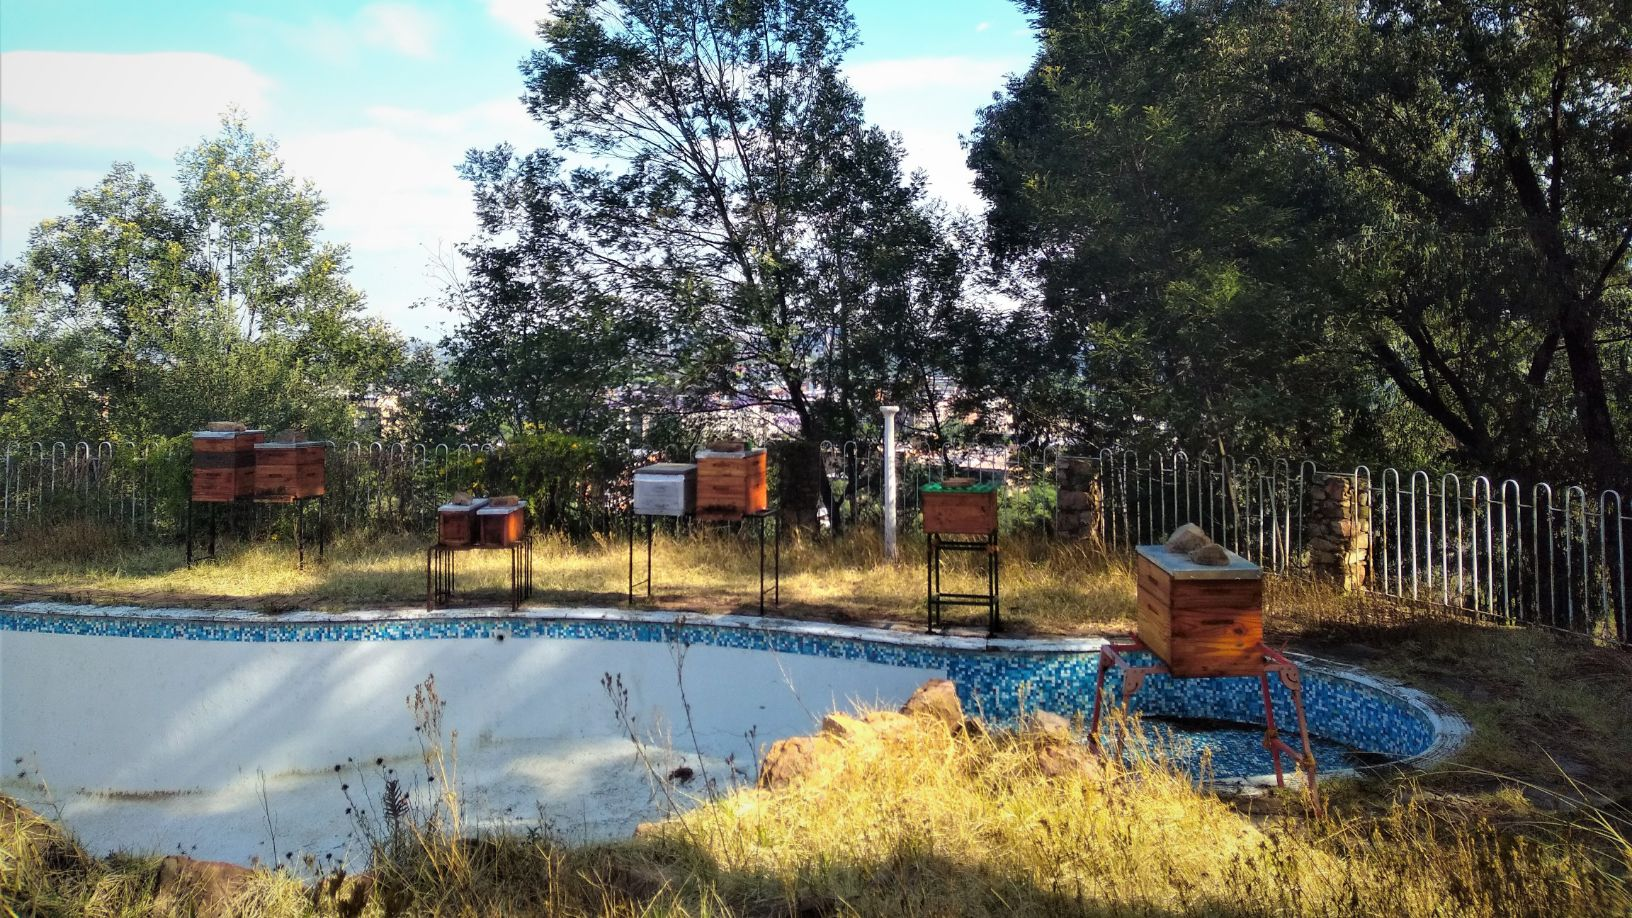 Urban Beekeeping Site Houghton JHB